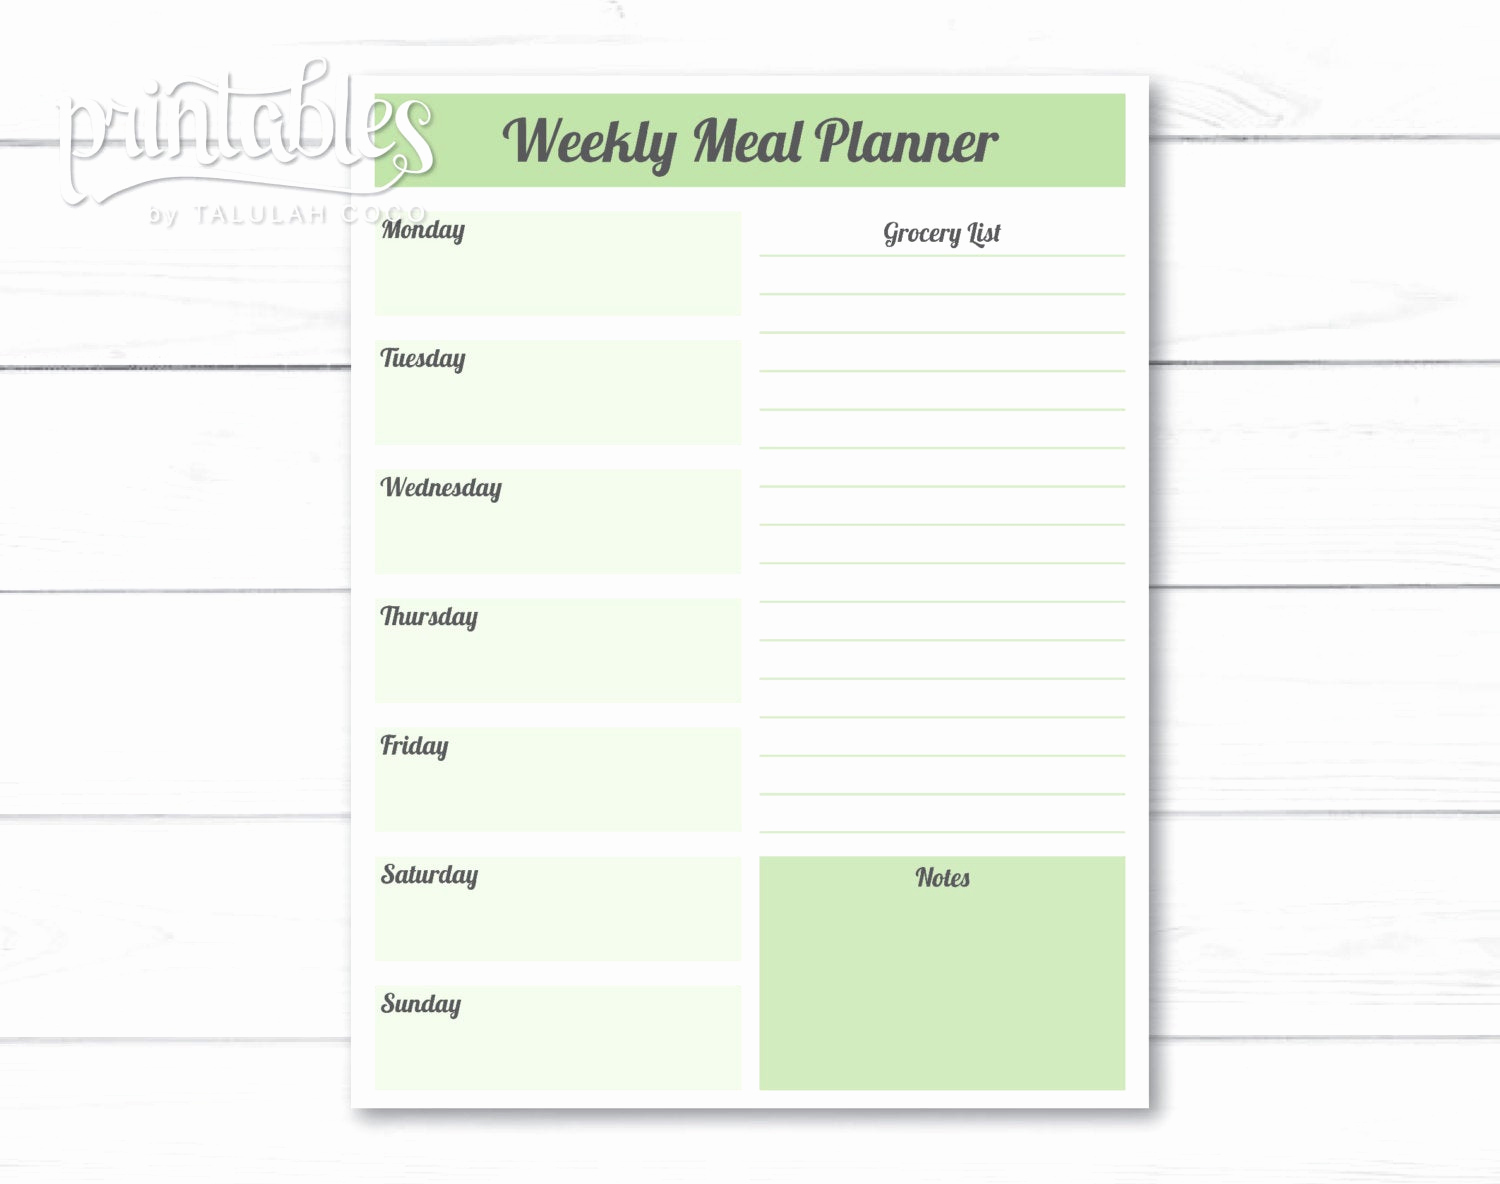 Monthly Meal Planner Template Unique Editable Meal Planner Template Weekly Meal Planner with